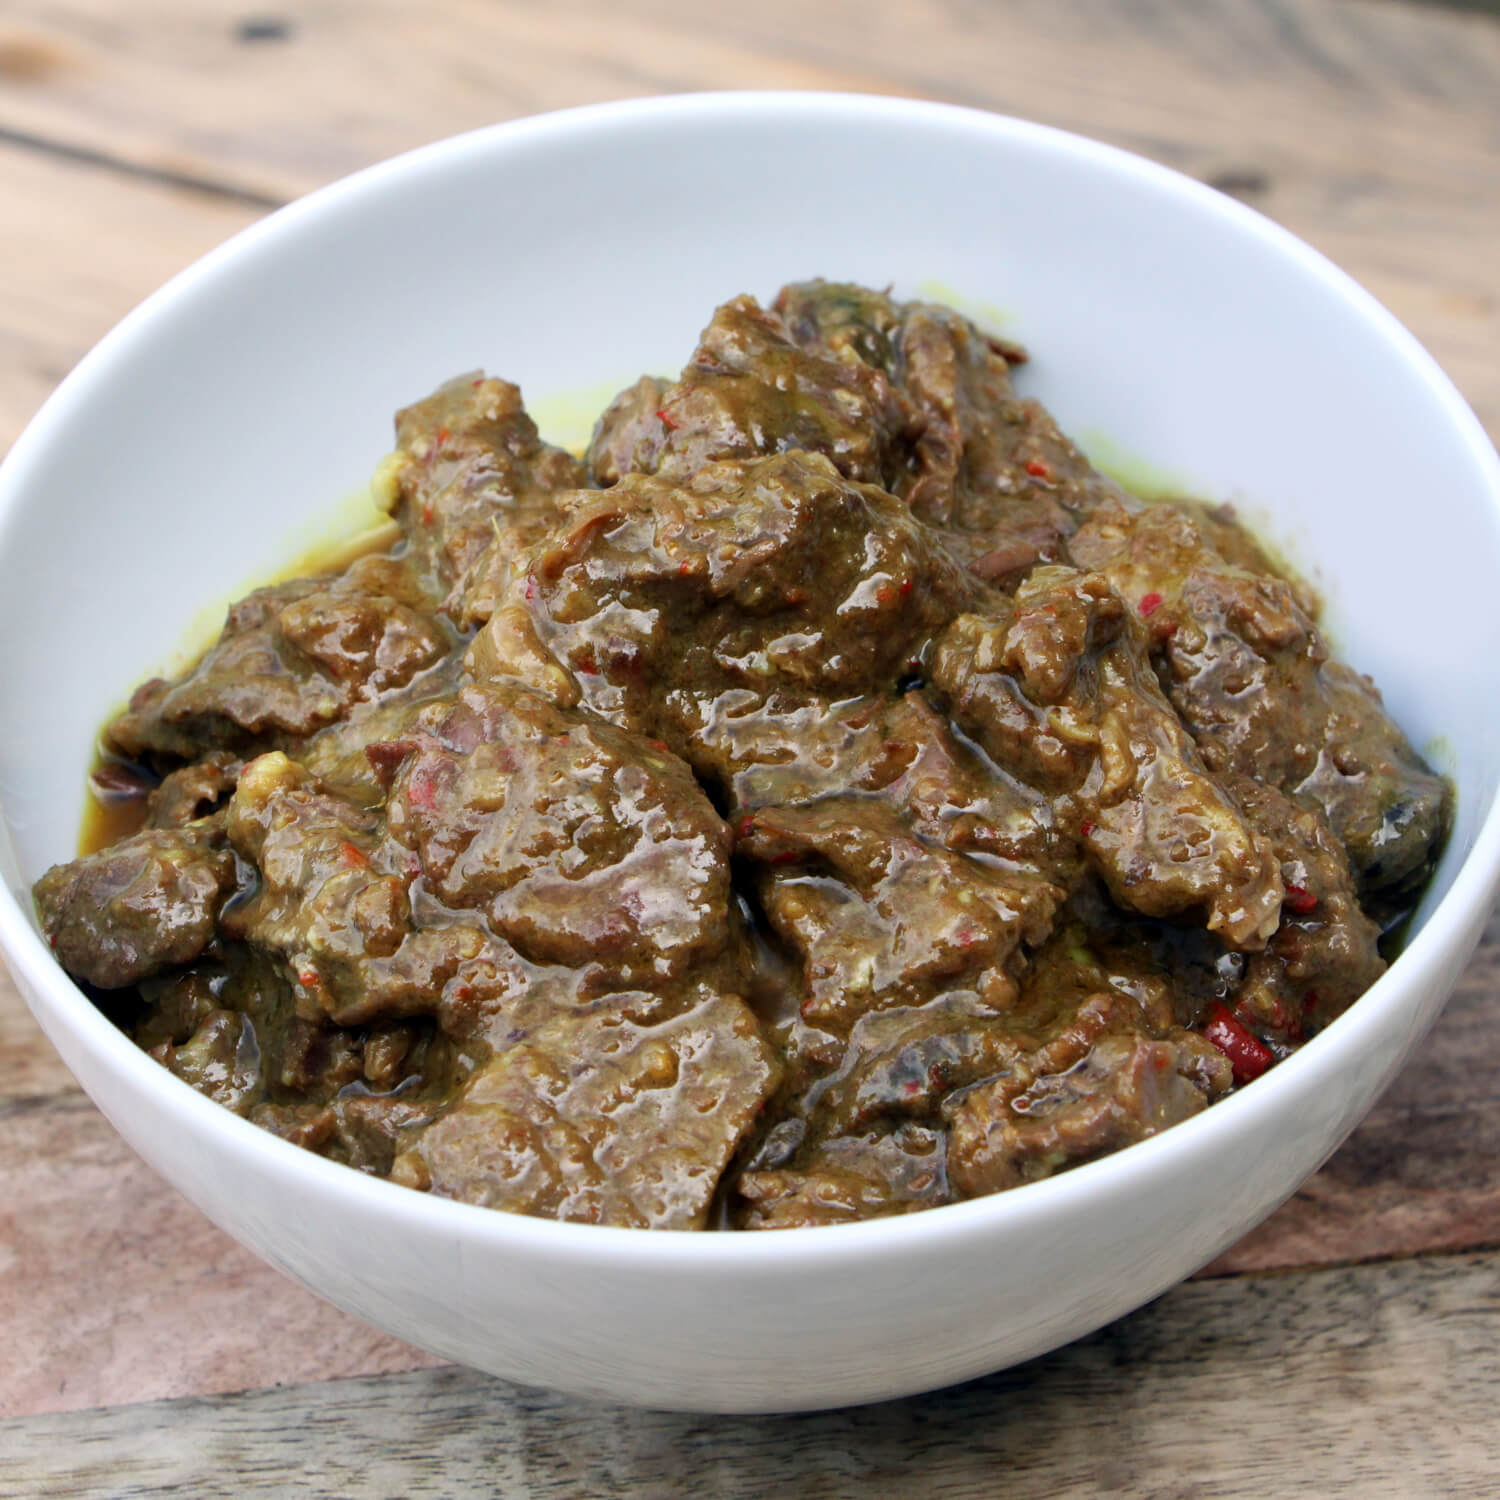 Rendang uit de Dutch Oven